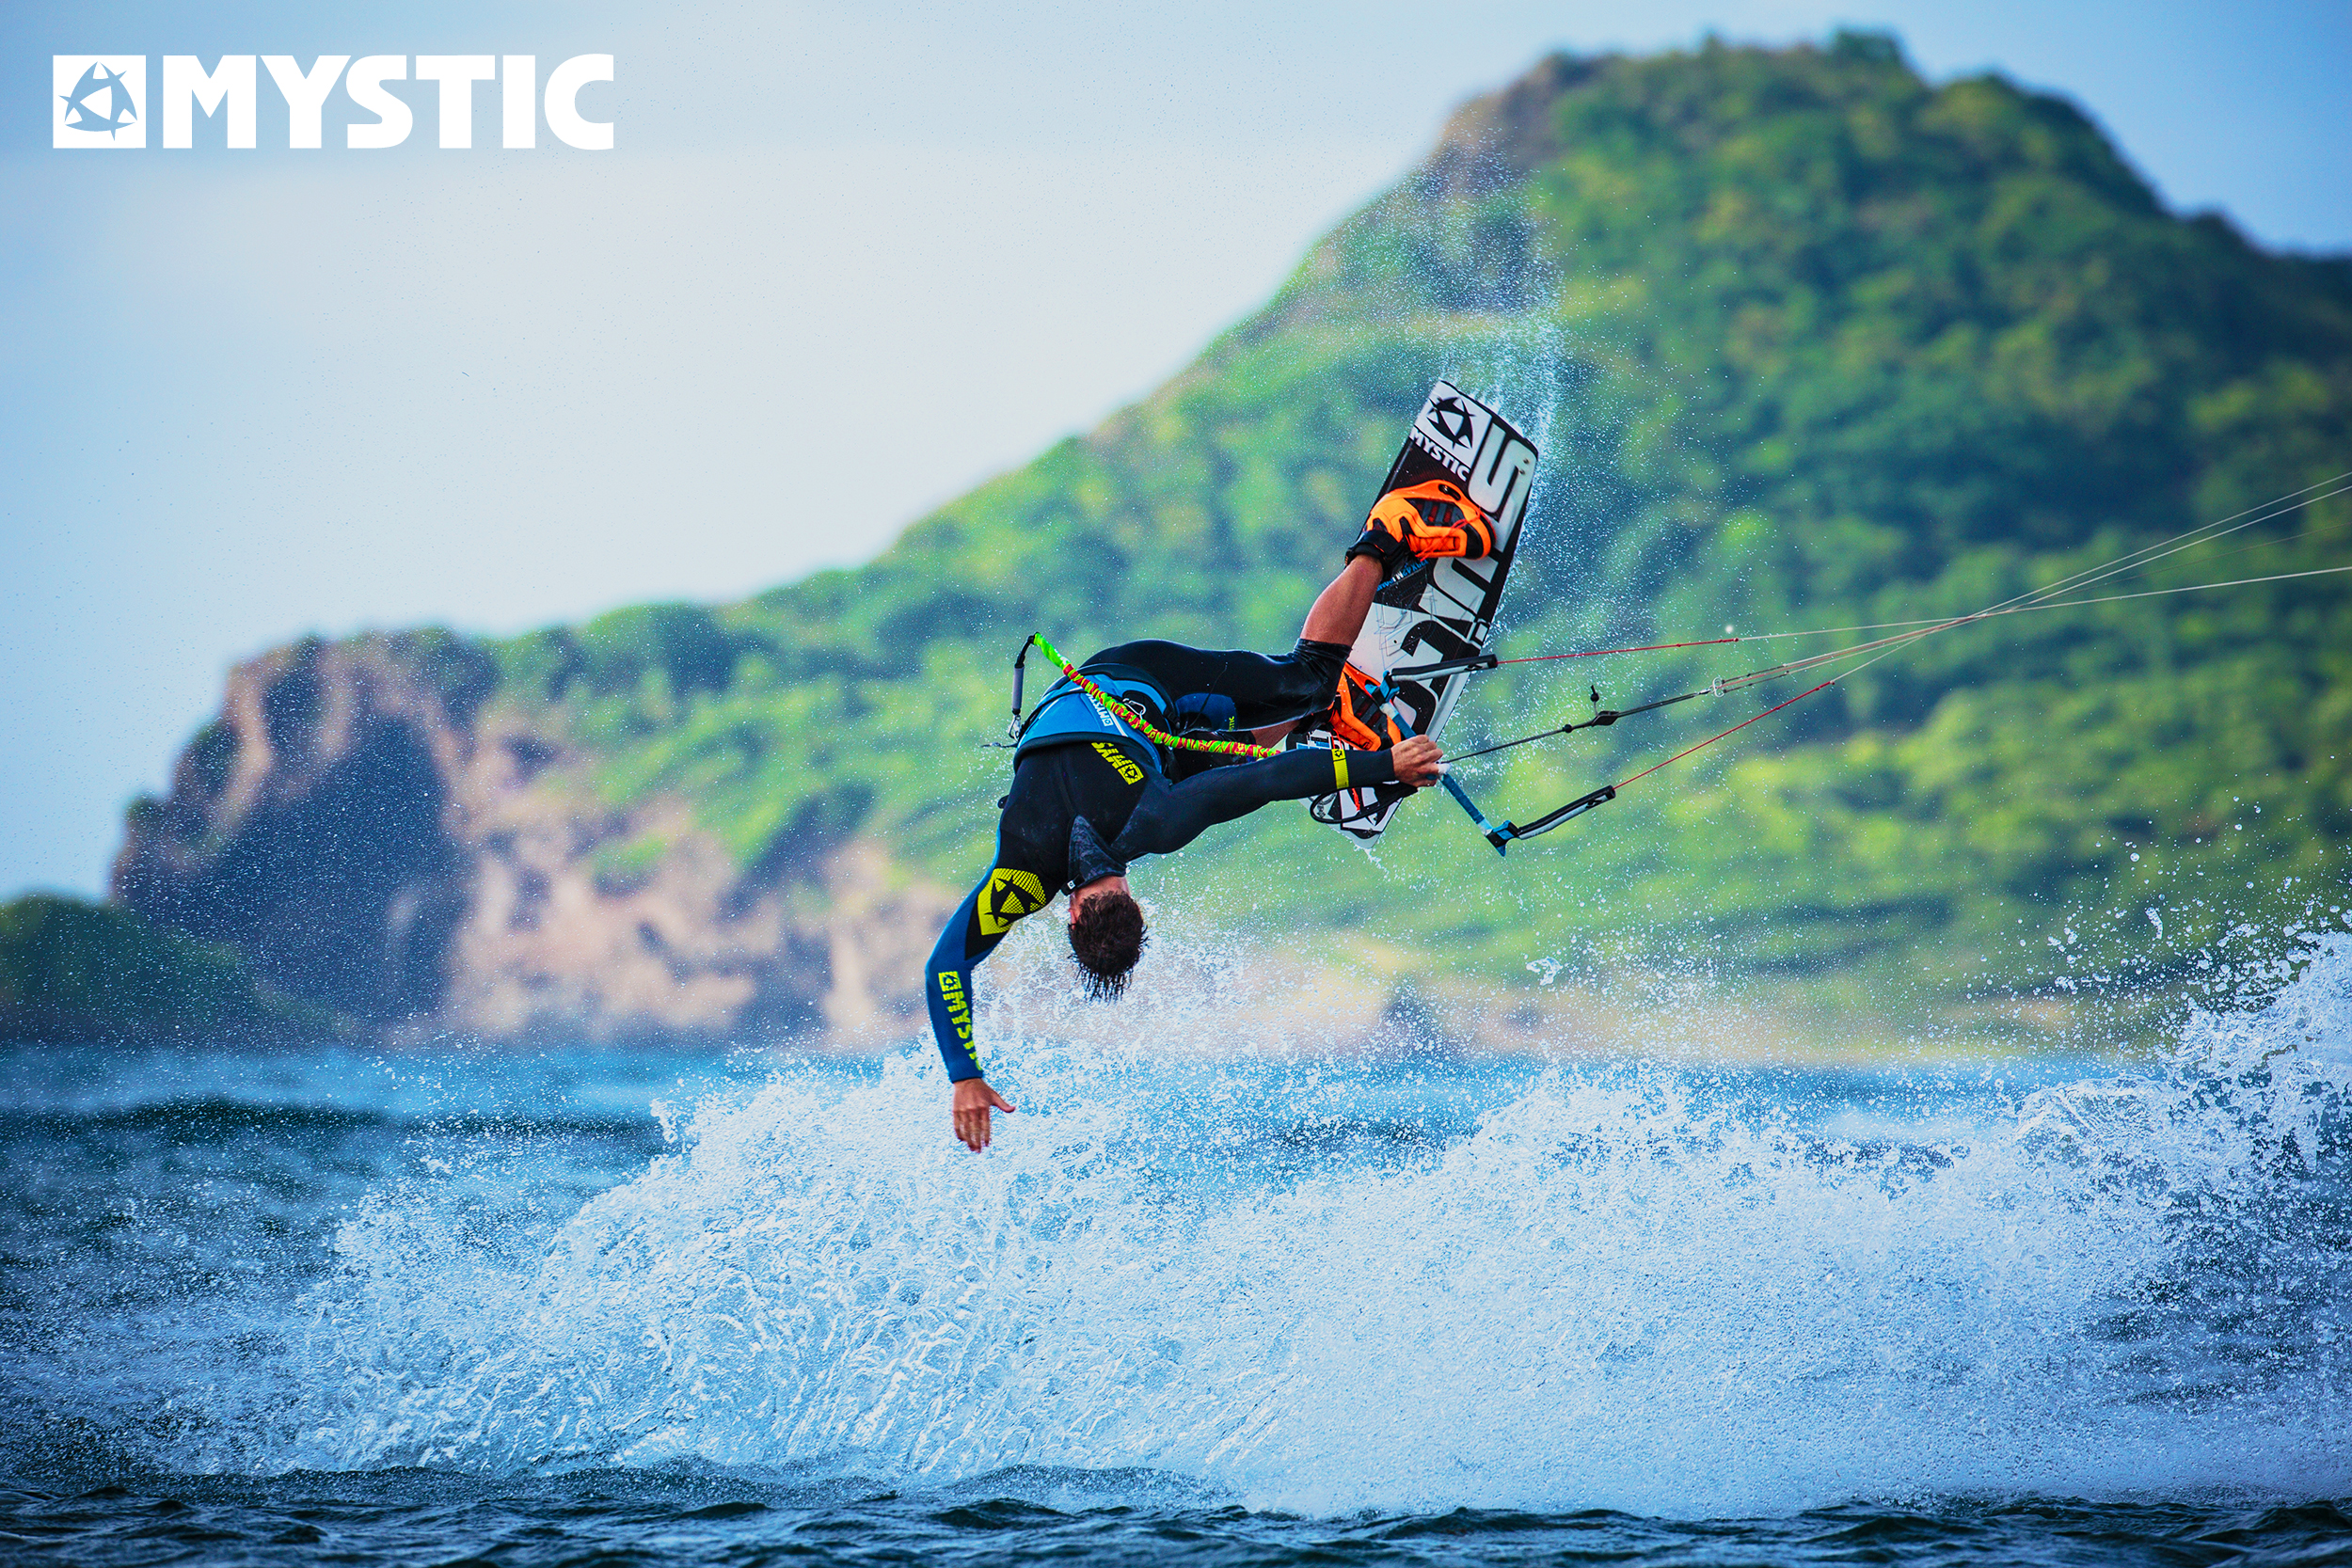 kitesurf wallpaper image - Kiteboarder Marc Jacobs showing off an incredible low mobe - in resolution: Original 2500 X 1667